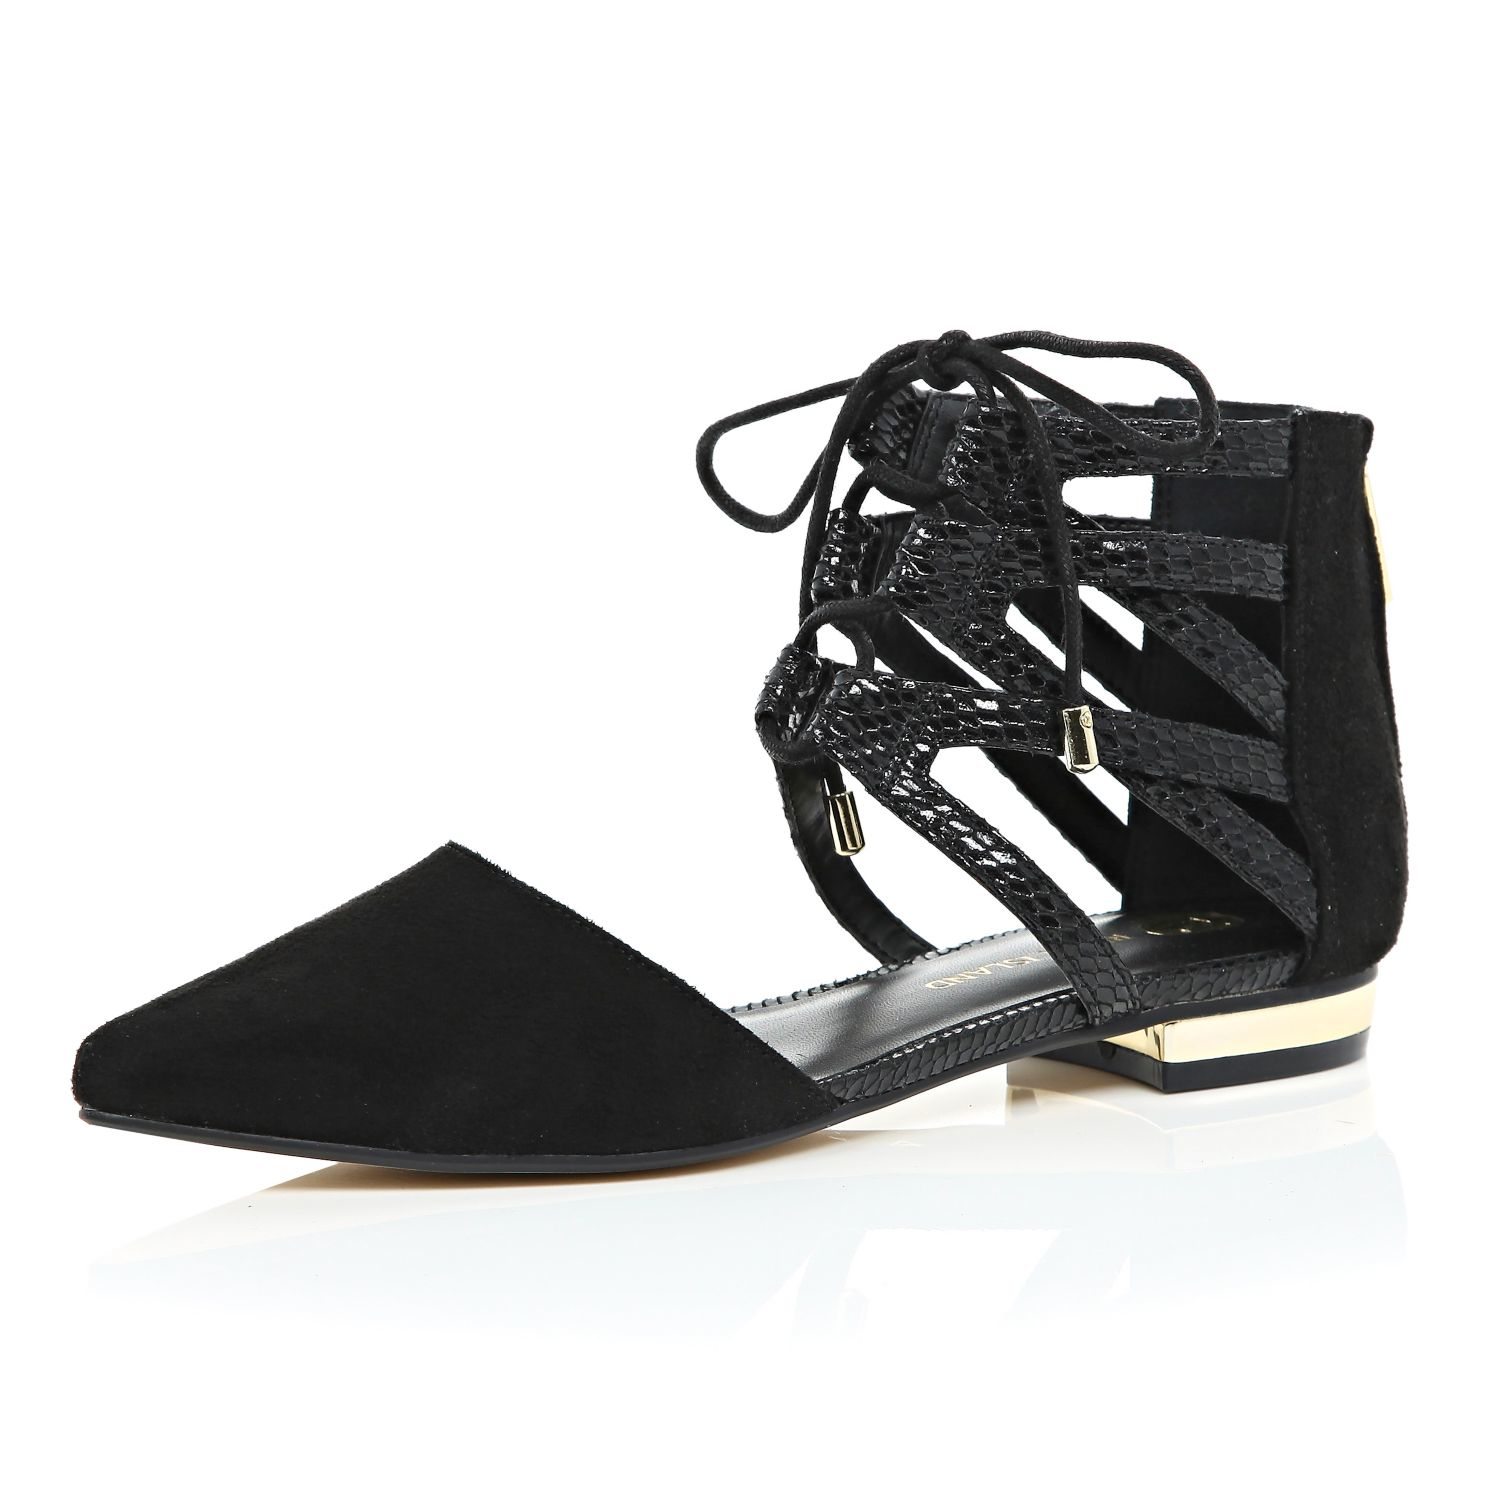 d4c42a780e River Island Black Ghillie Lace Up Ankle Flats in Black - Lyst